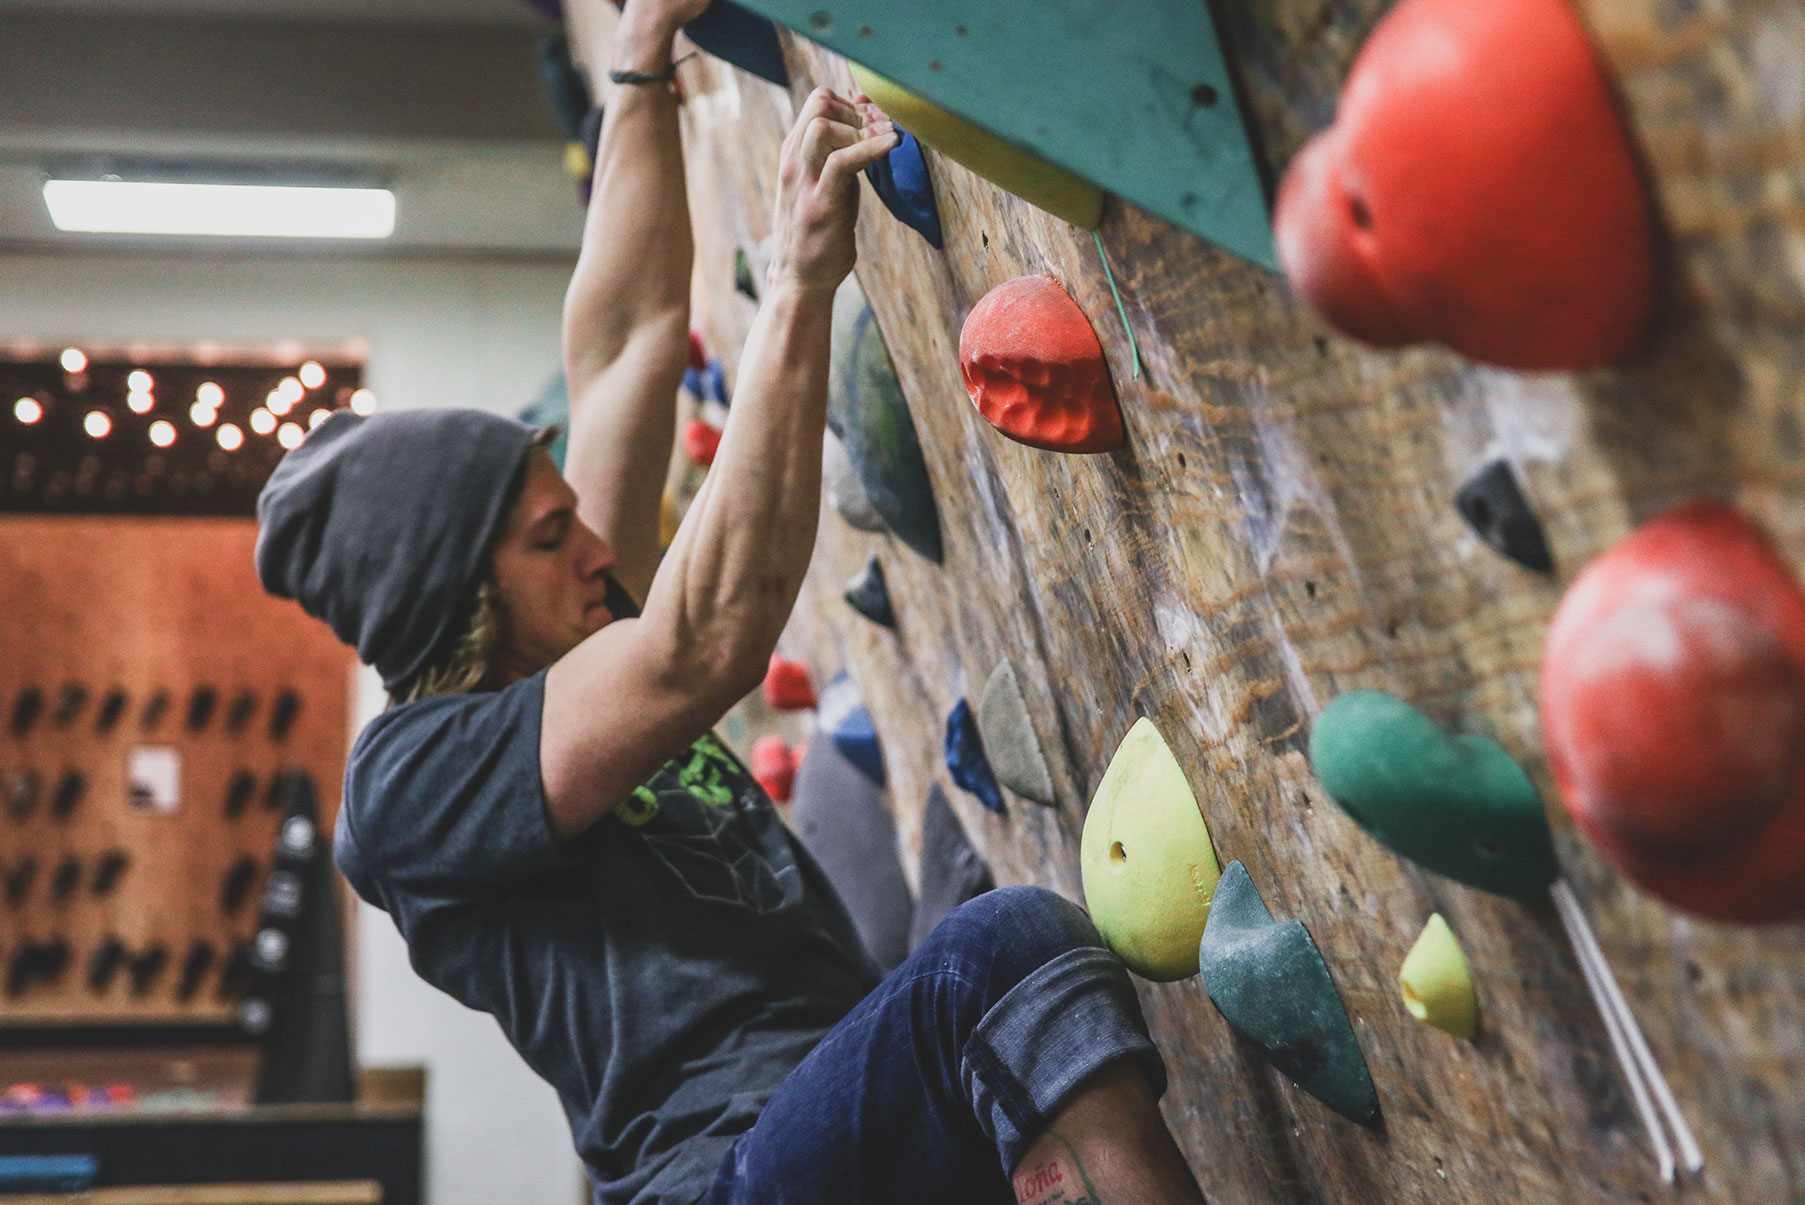 Thursday College Night - Climb for $10.00 with a college ID